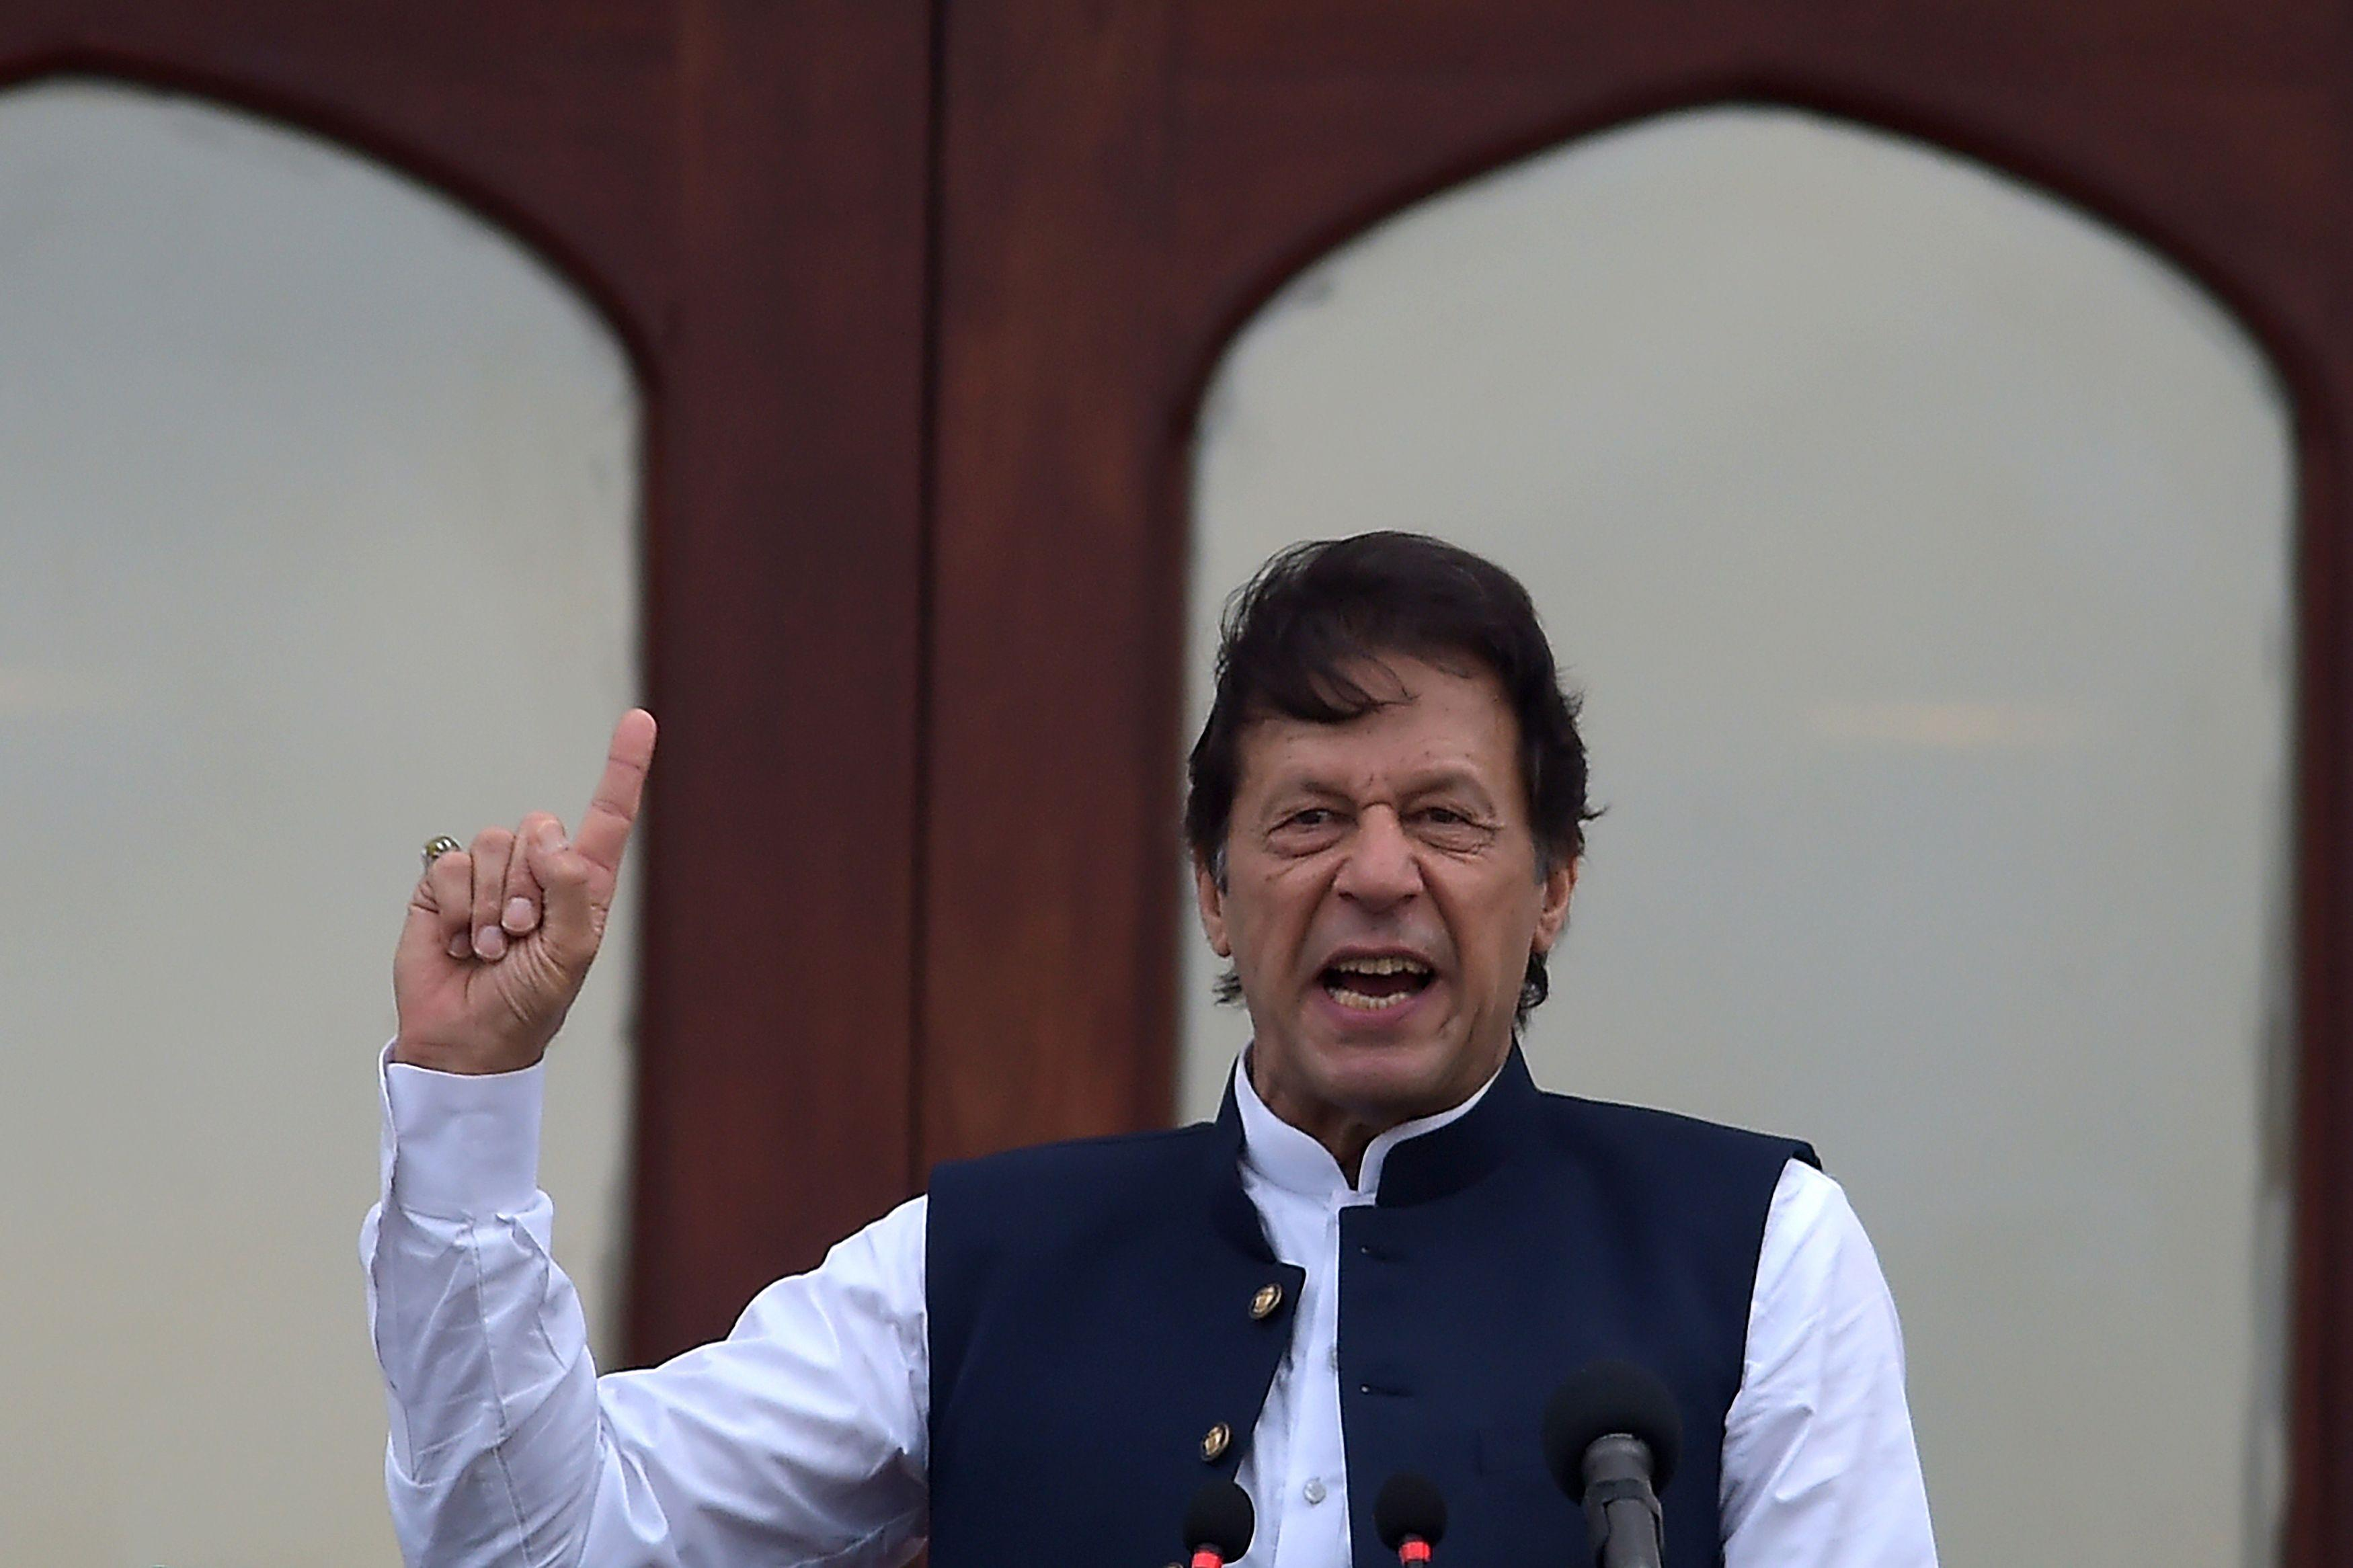 Pakistan army committing genocide in Balochistan: Imran Khan